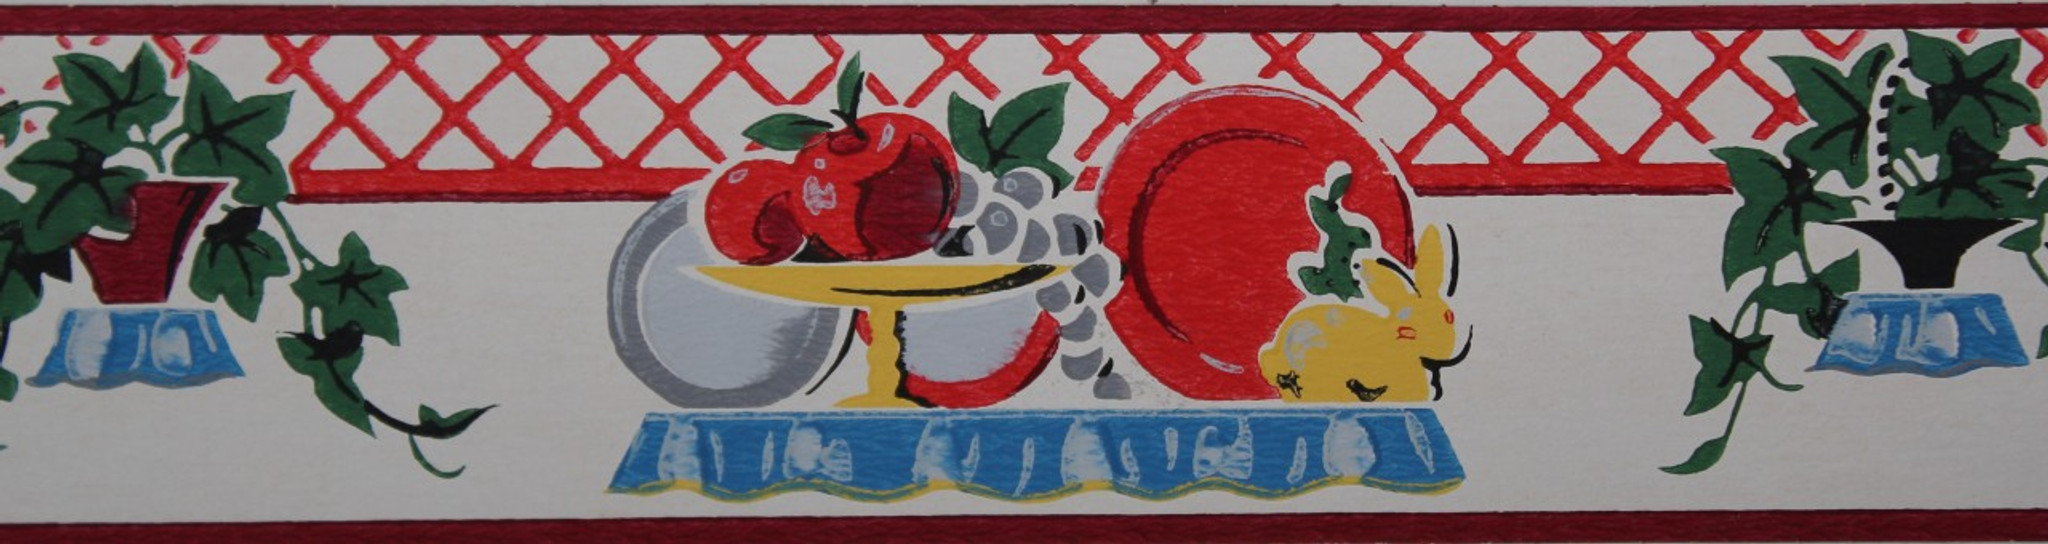 Bon Duro Vintage Wallpaper Border Kitchen Plates And Fruit ...